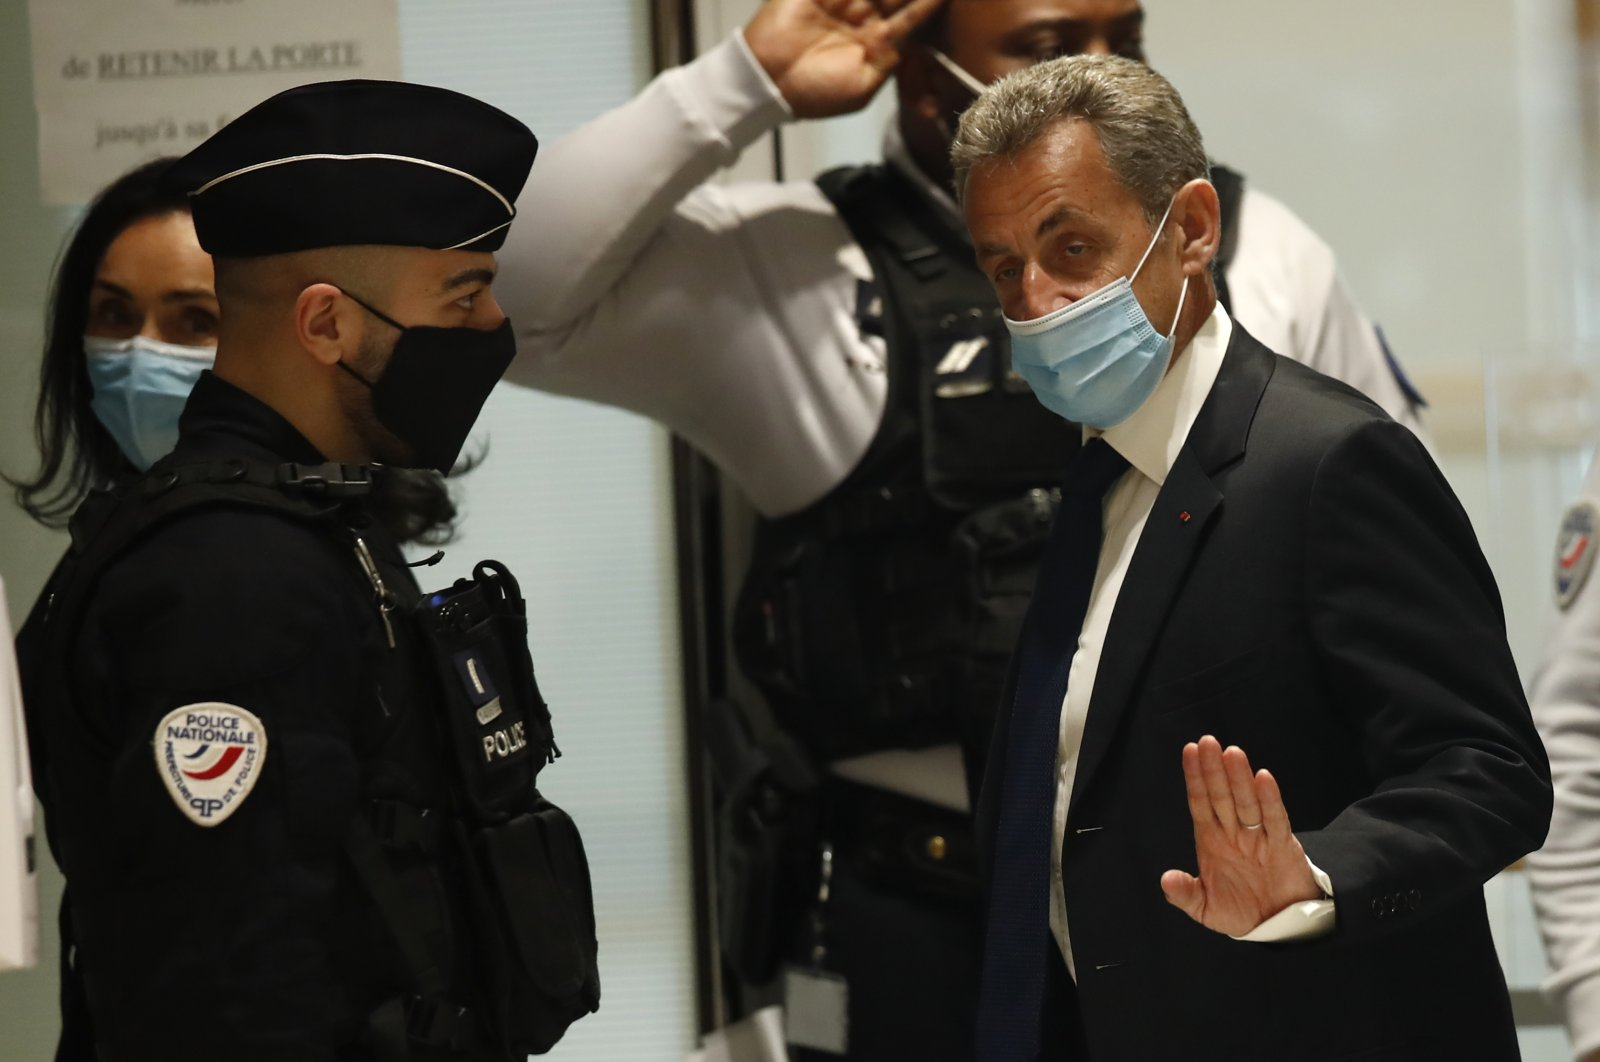 Former French President Nicolas Sarkozy arrives at the courtroom Monday, Paris, France, March 1, 2021. (AP Photo)